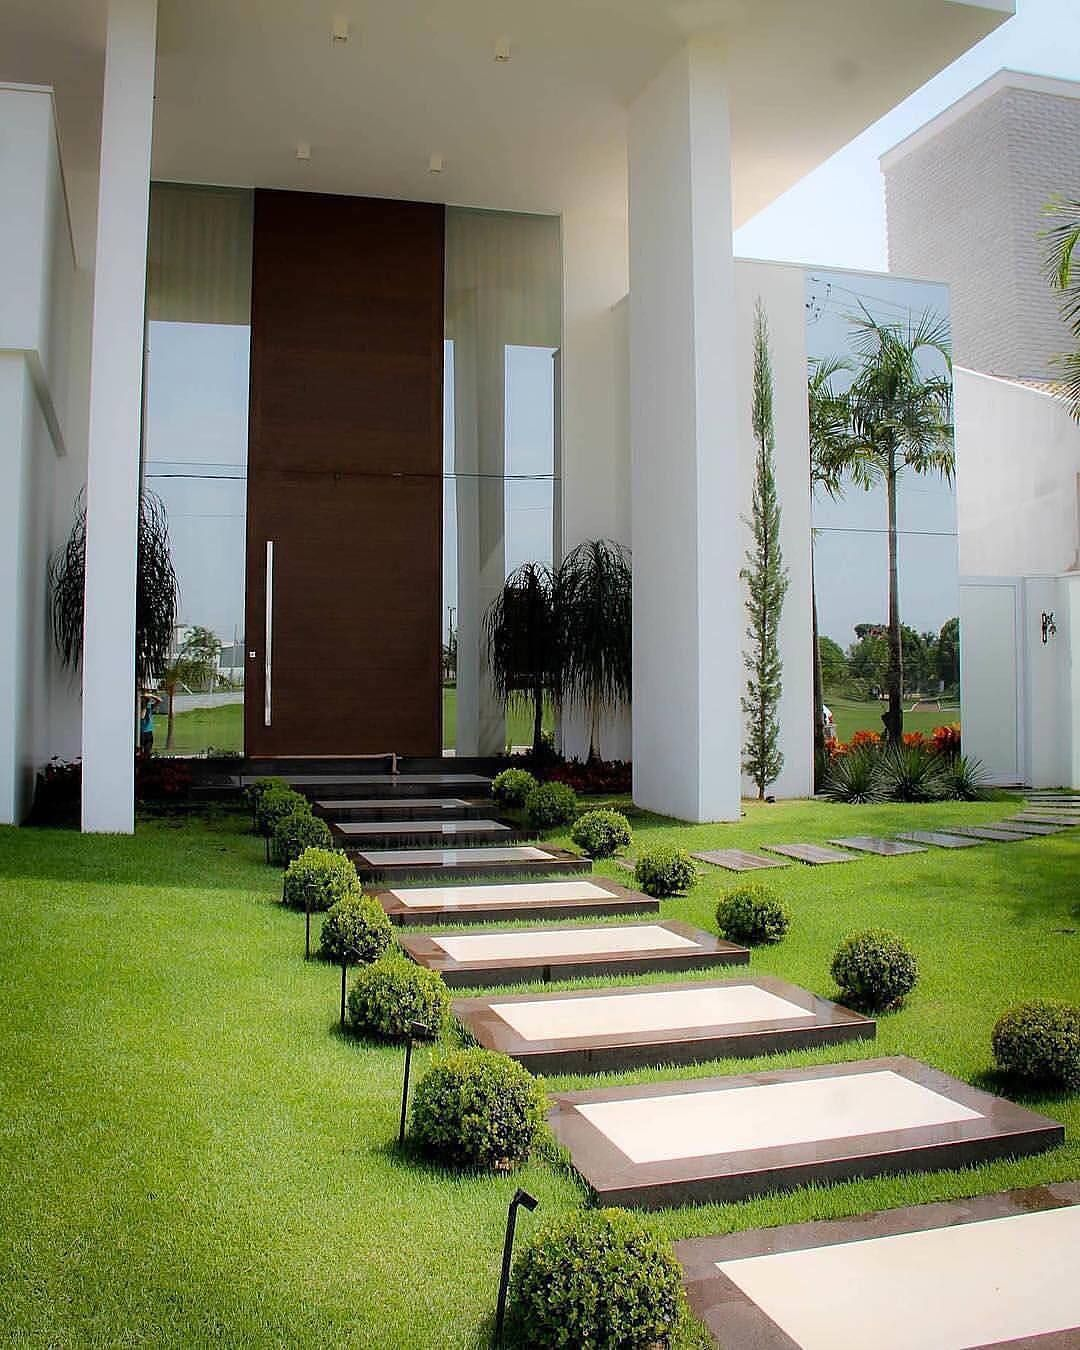 Homedecor Homedecorideas With Images Modern Landscaping